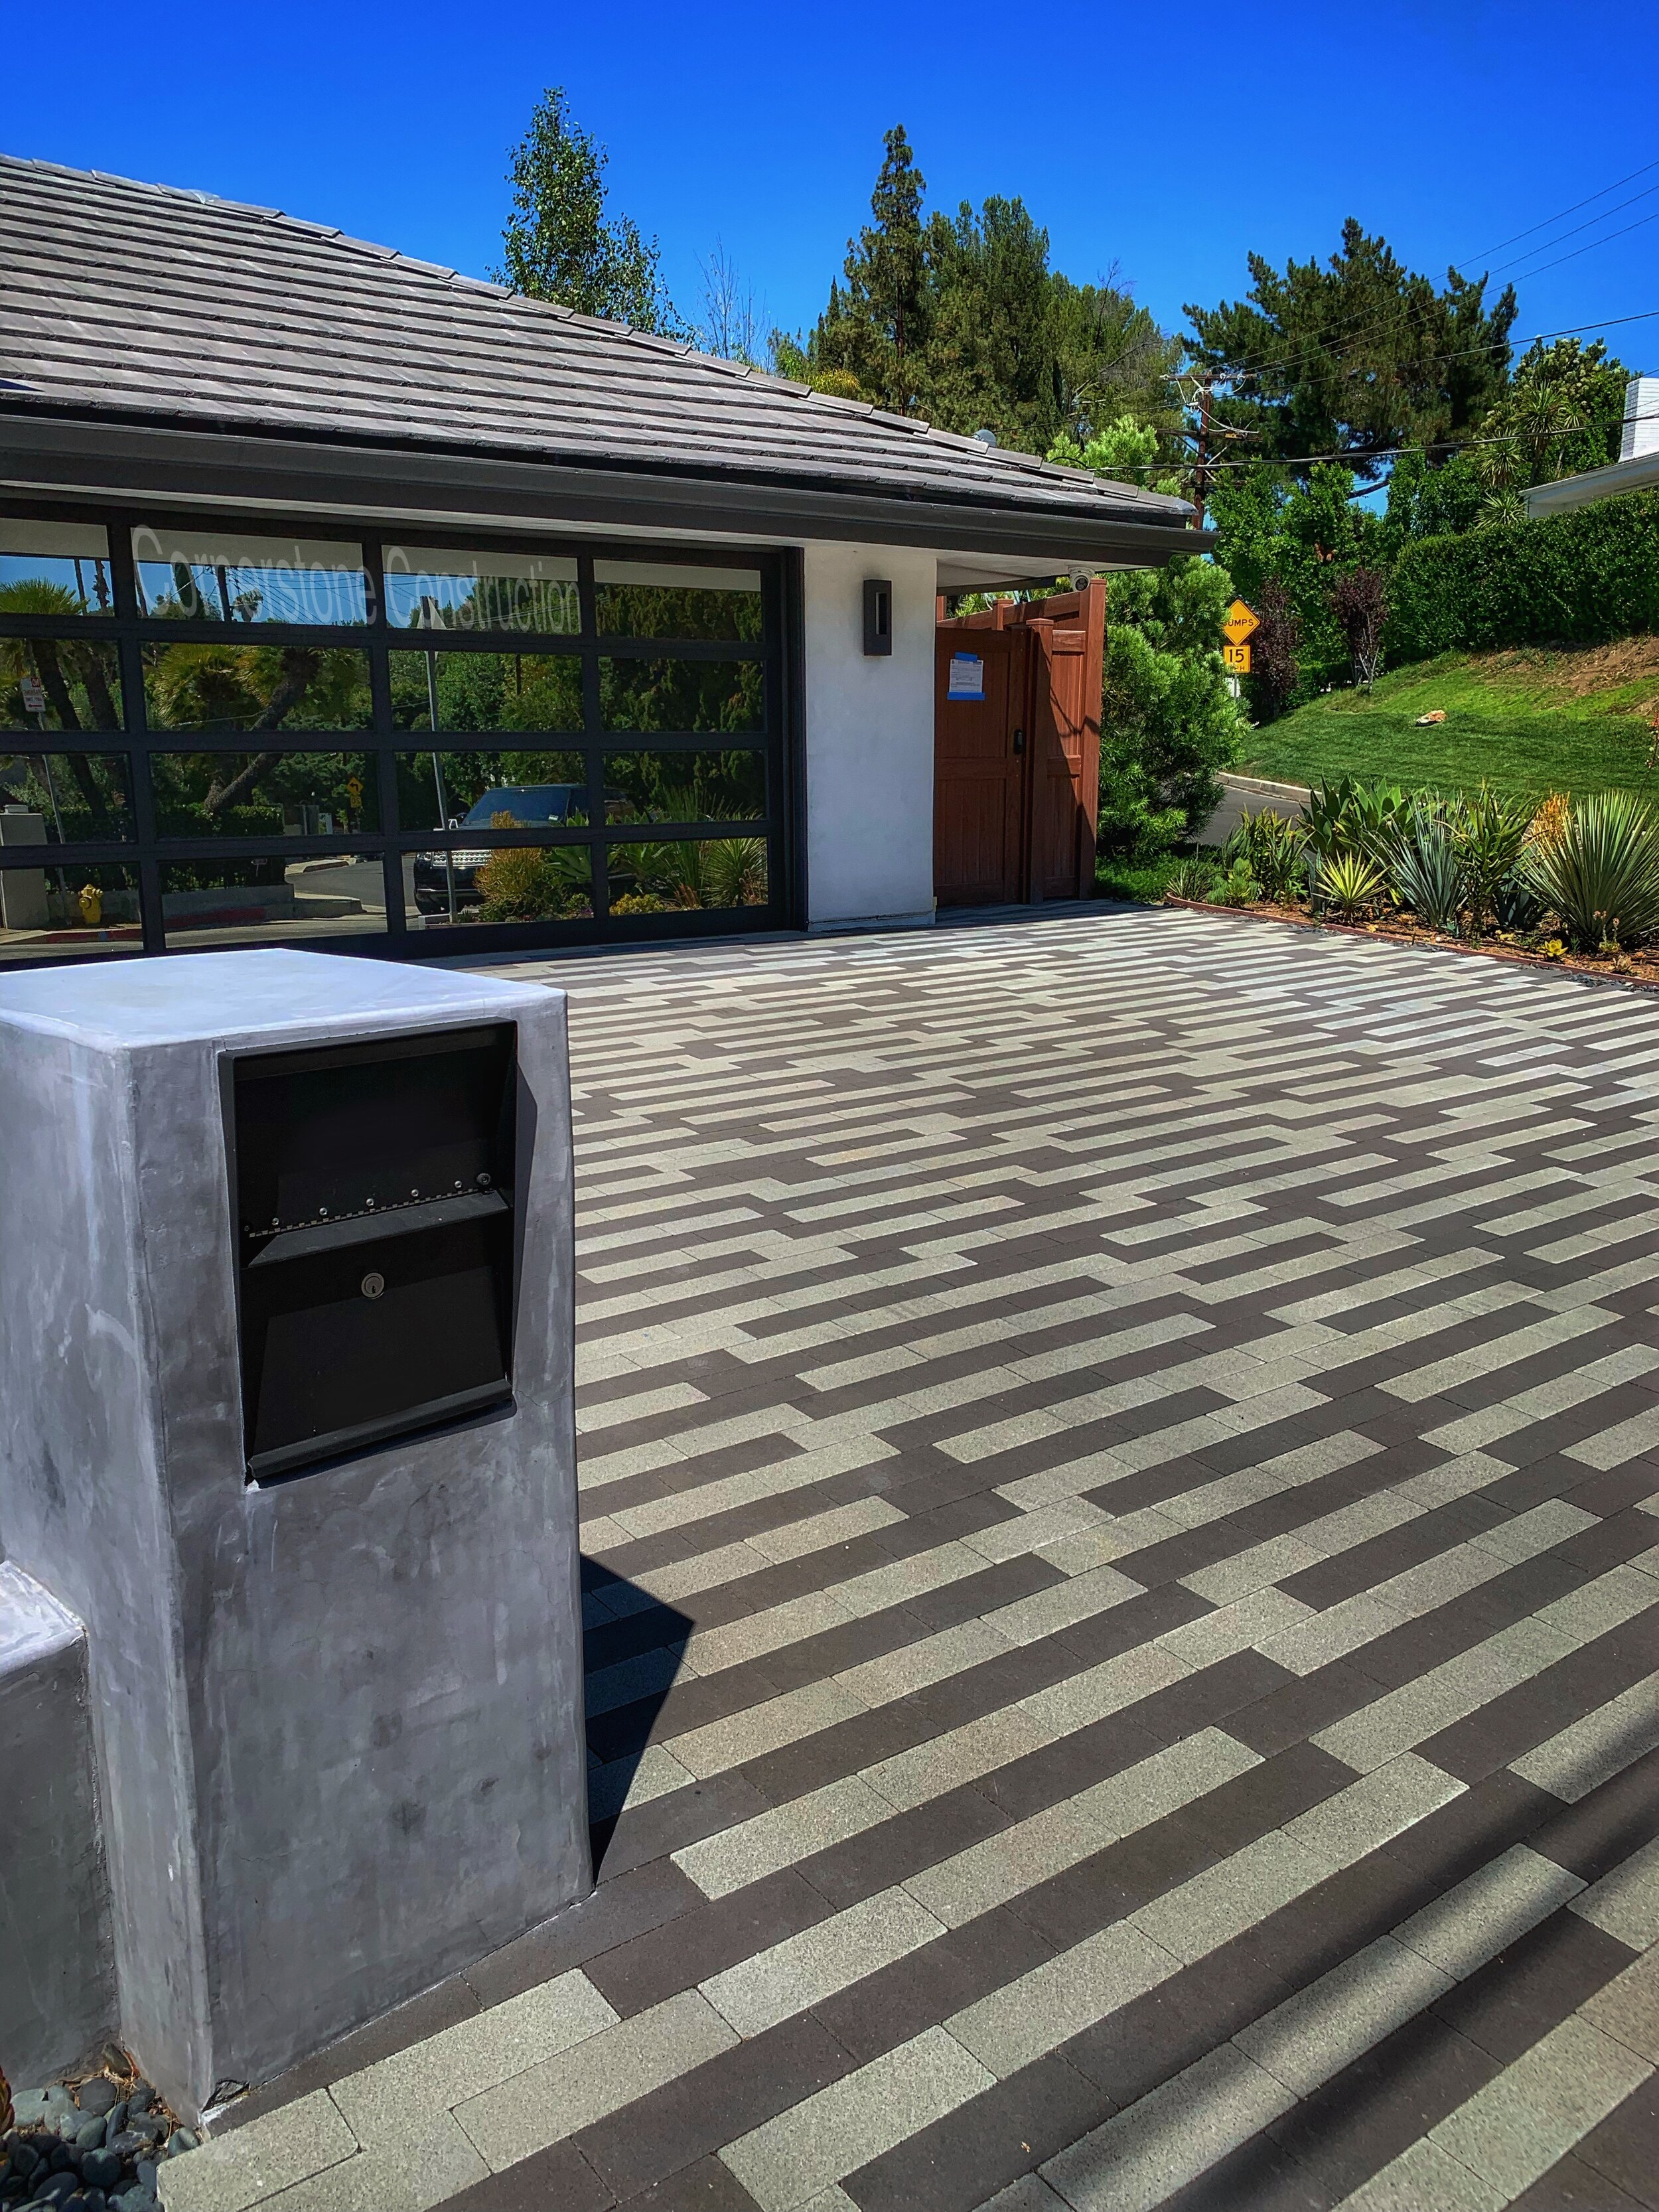 patterned stone pavers in driveway